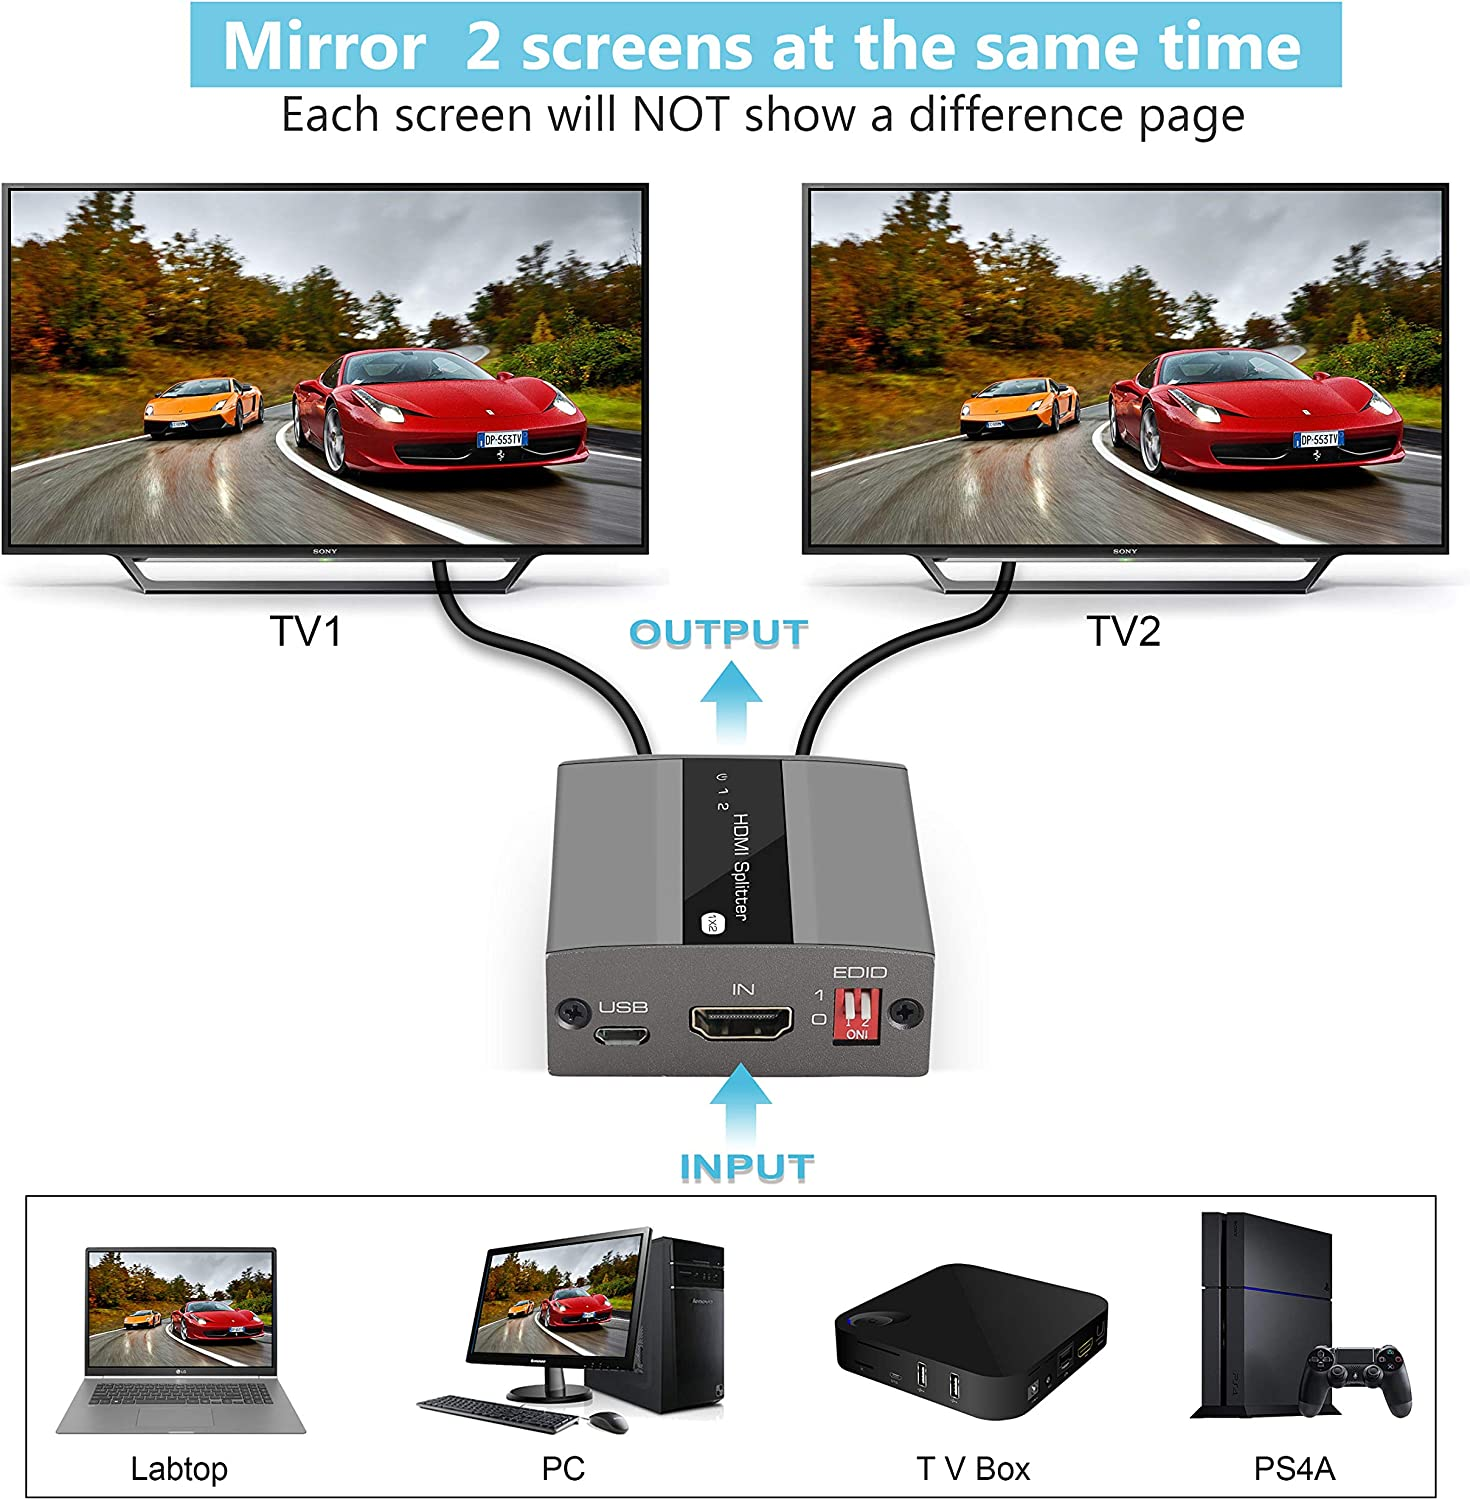 HDCP1.4【Only Copy HDMI Splitter 1 in 2 Out 1080P do not provide 2 different outputs】 3D with Manual EDID Management【Display two images at the same time the signal is more stable】Support 4K@30HZ